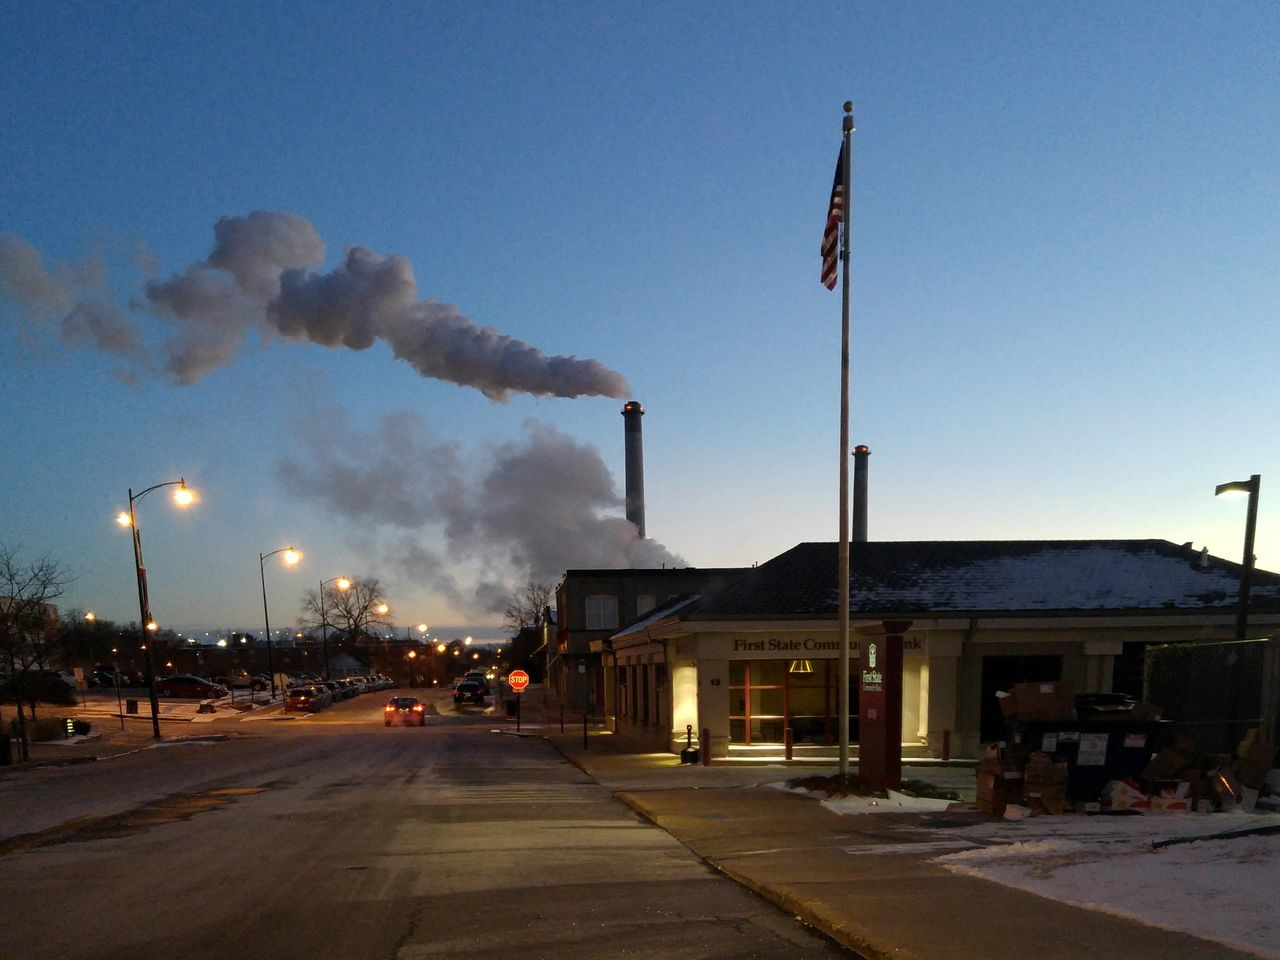 smoke - physical structure, pollution, smoke stack, emitting, air pollution, industry, chimney, factory, clear sky, built structure, fumes, no people, architecture, outdoors, day, sky, building exterior